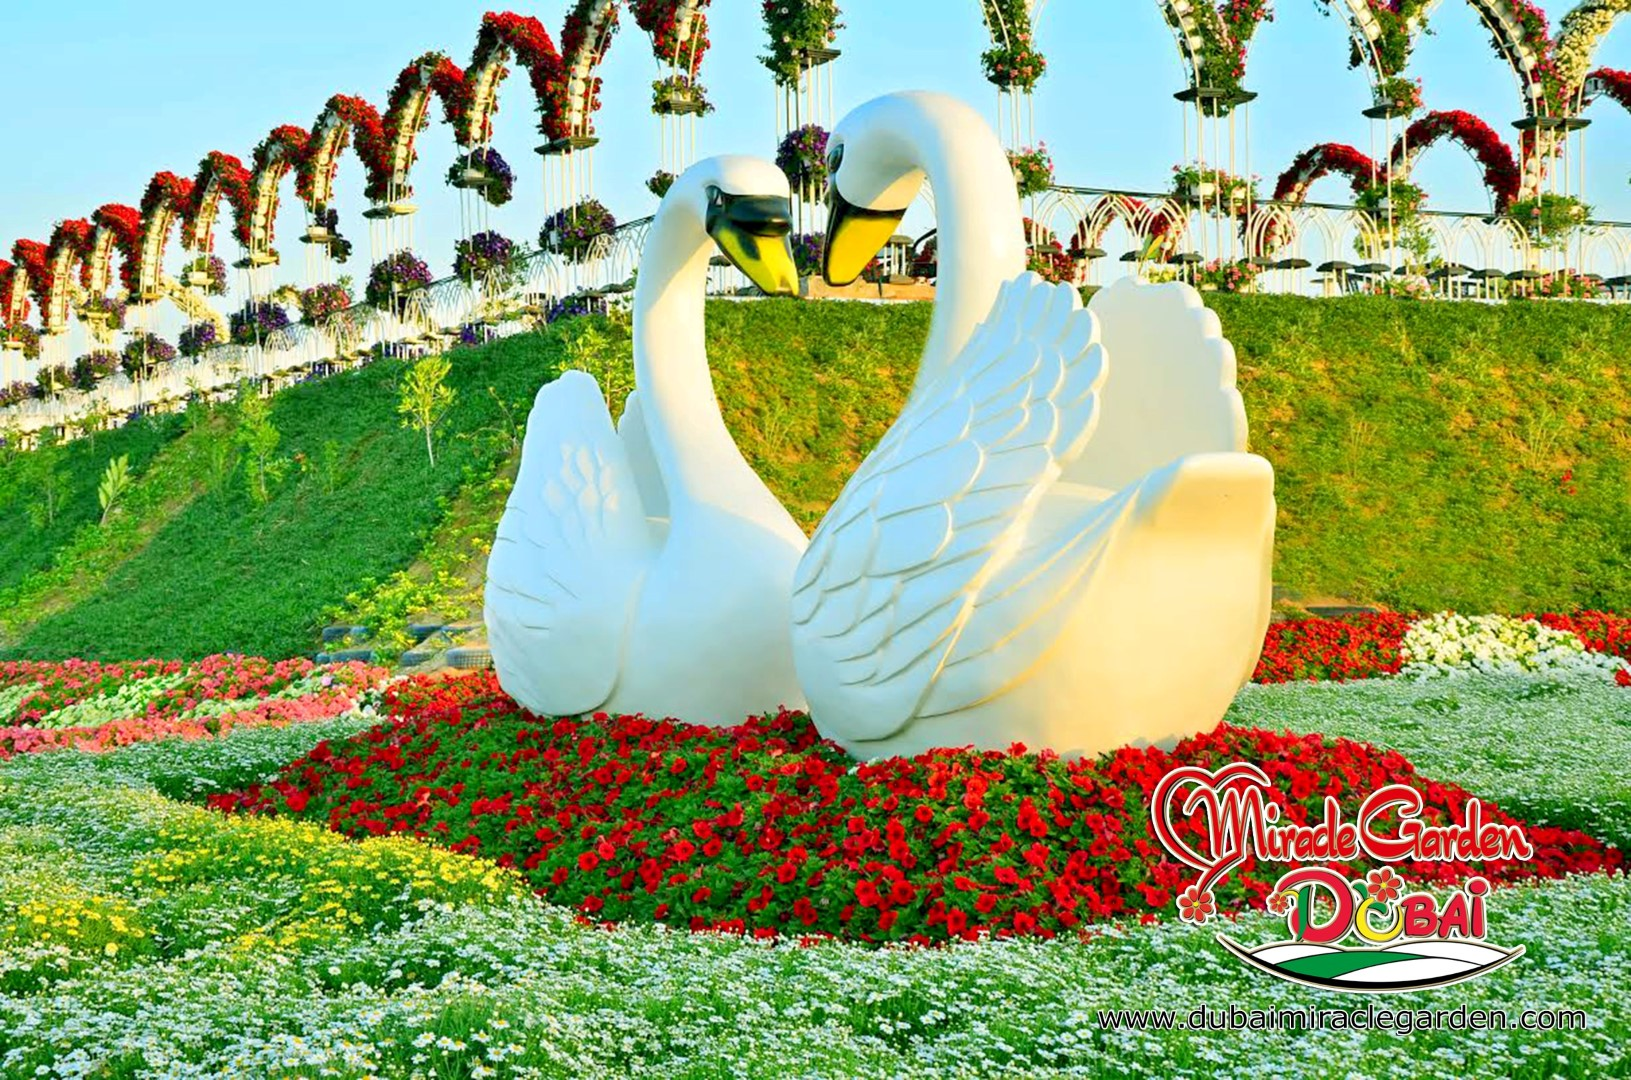 Dubai Miracle Garden The World S Biggest Natural Flower Garden With Over 45 Million Flowers Architecture Design